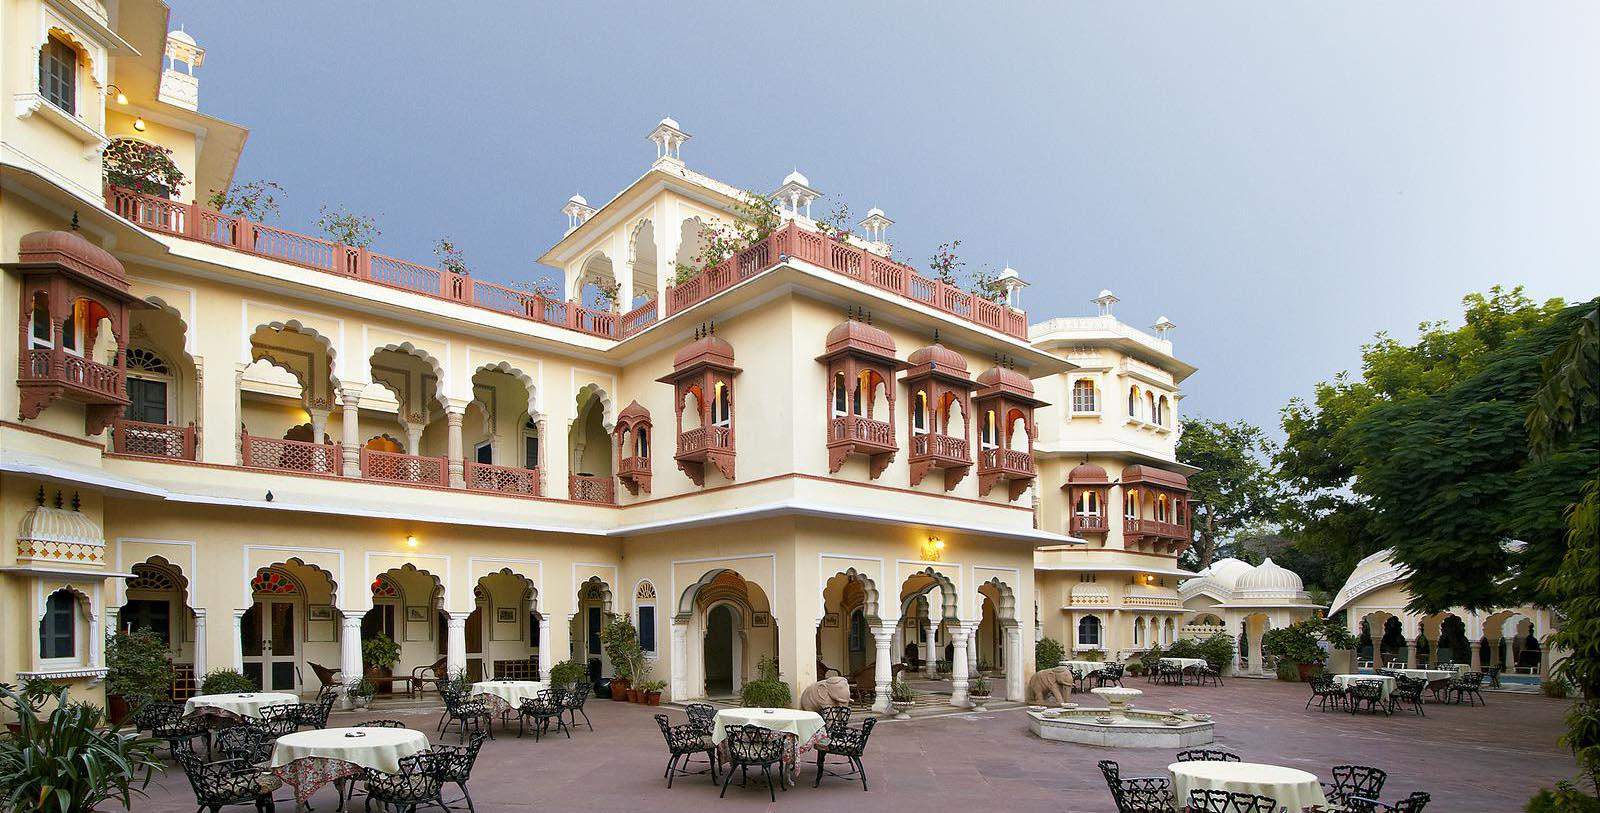 Image of hotel exterior Alsisar Haveli, 1892, Member of Historic Hotels Worldwide, in Jaipur, India, Special Offers, Discounted Rates, Families, Romantic Escape, Honeymoons, Anniversaries, Reunions